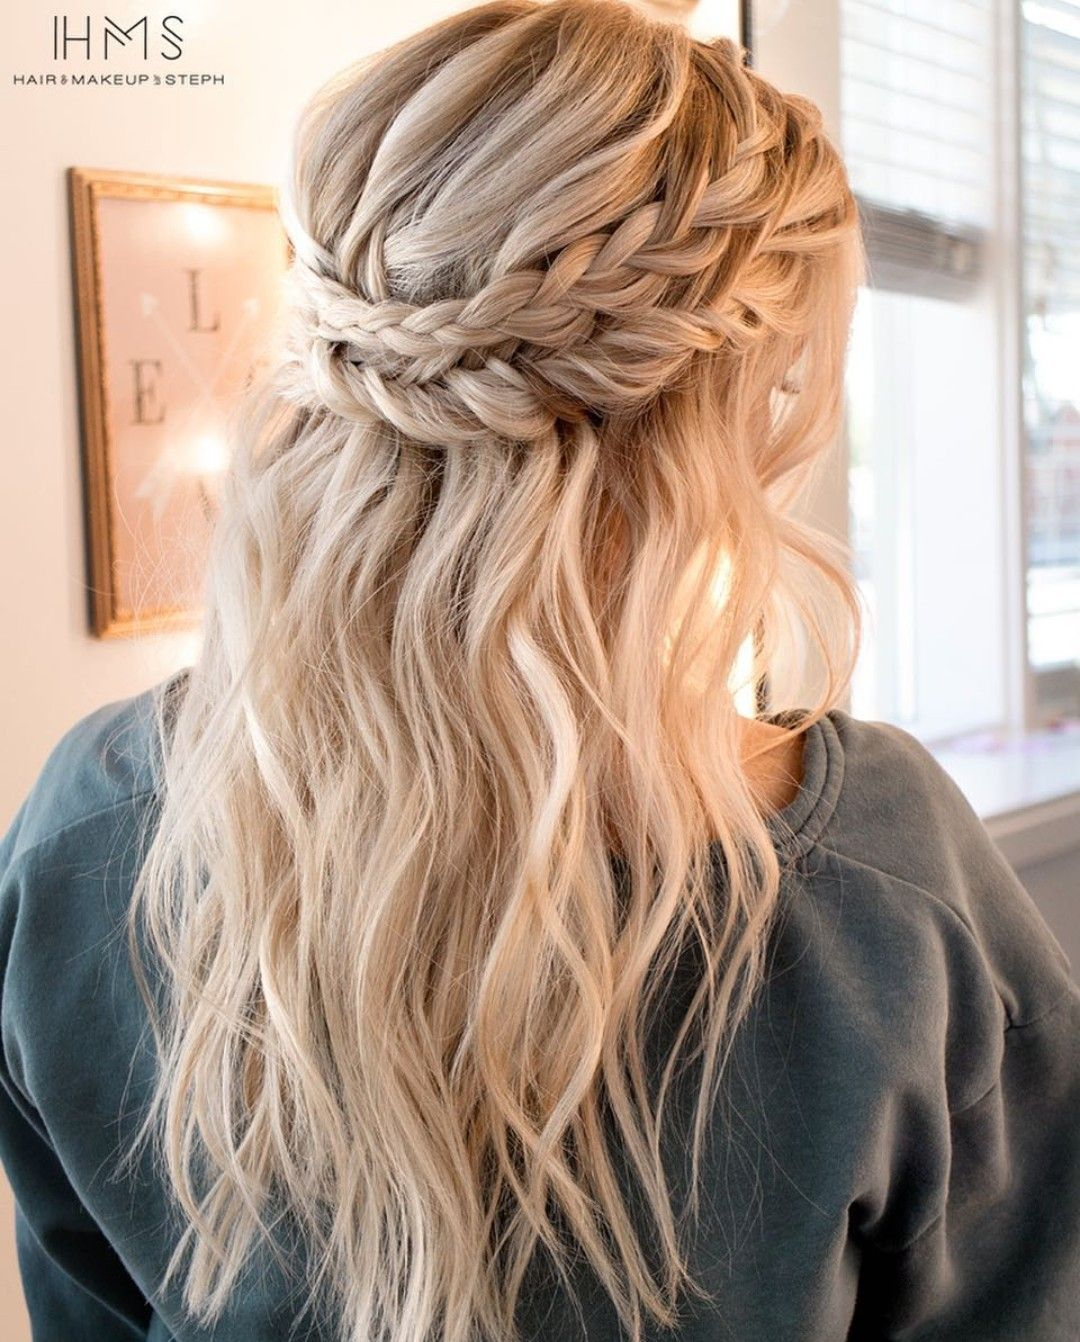 P I N T E R E S T  @inseekofthechic  Cute hairstyles for short